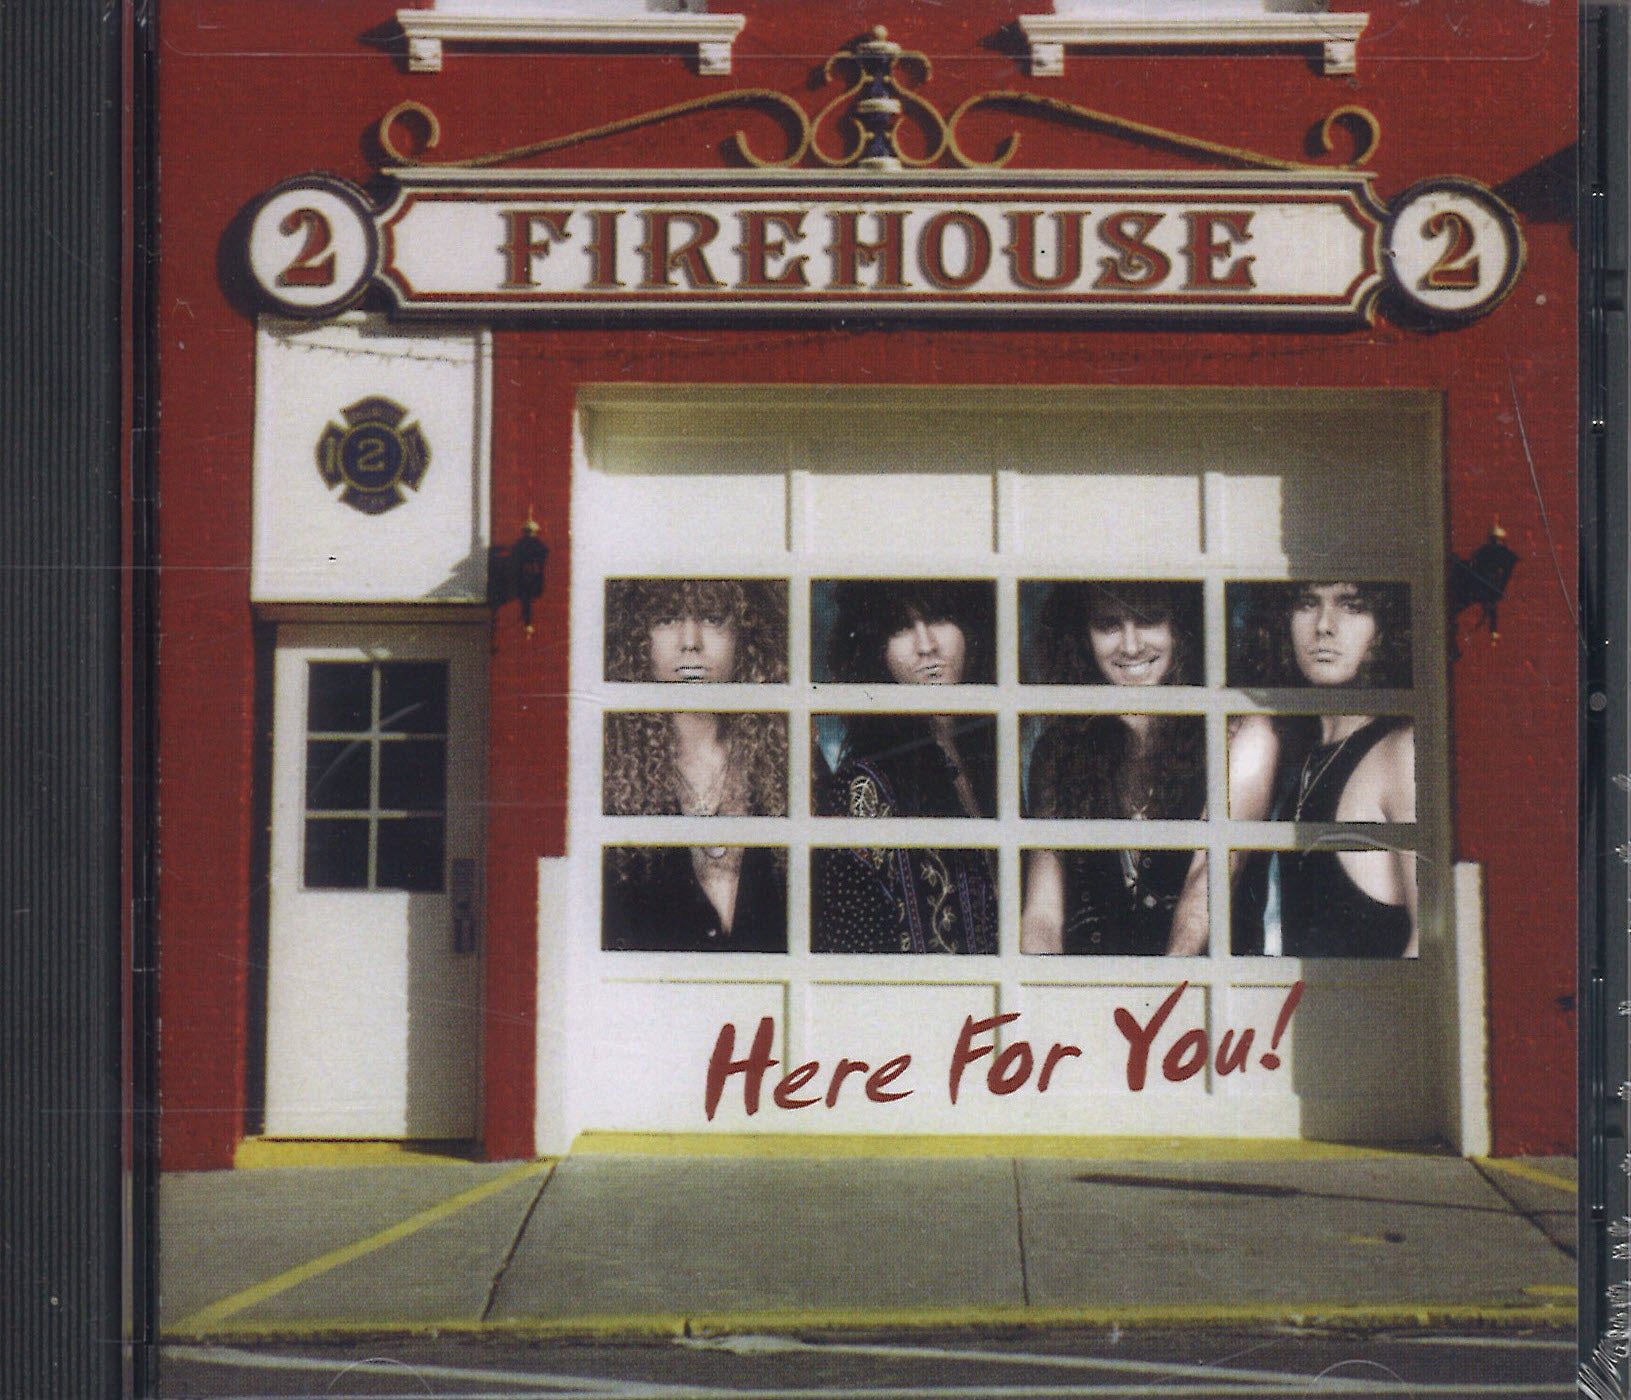 Firehouse Here For You!